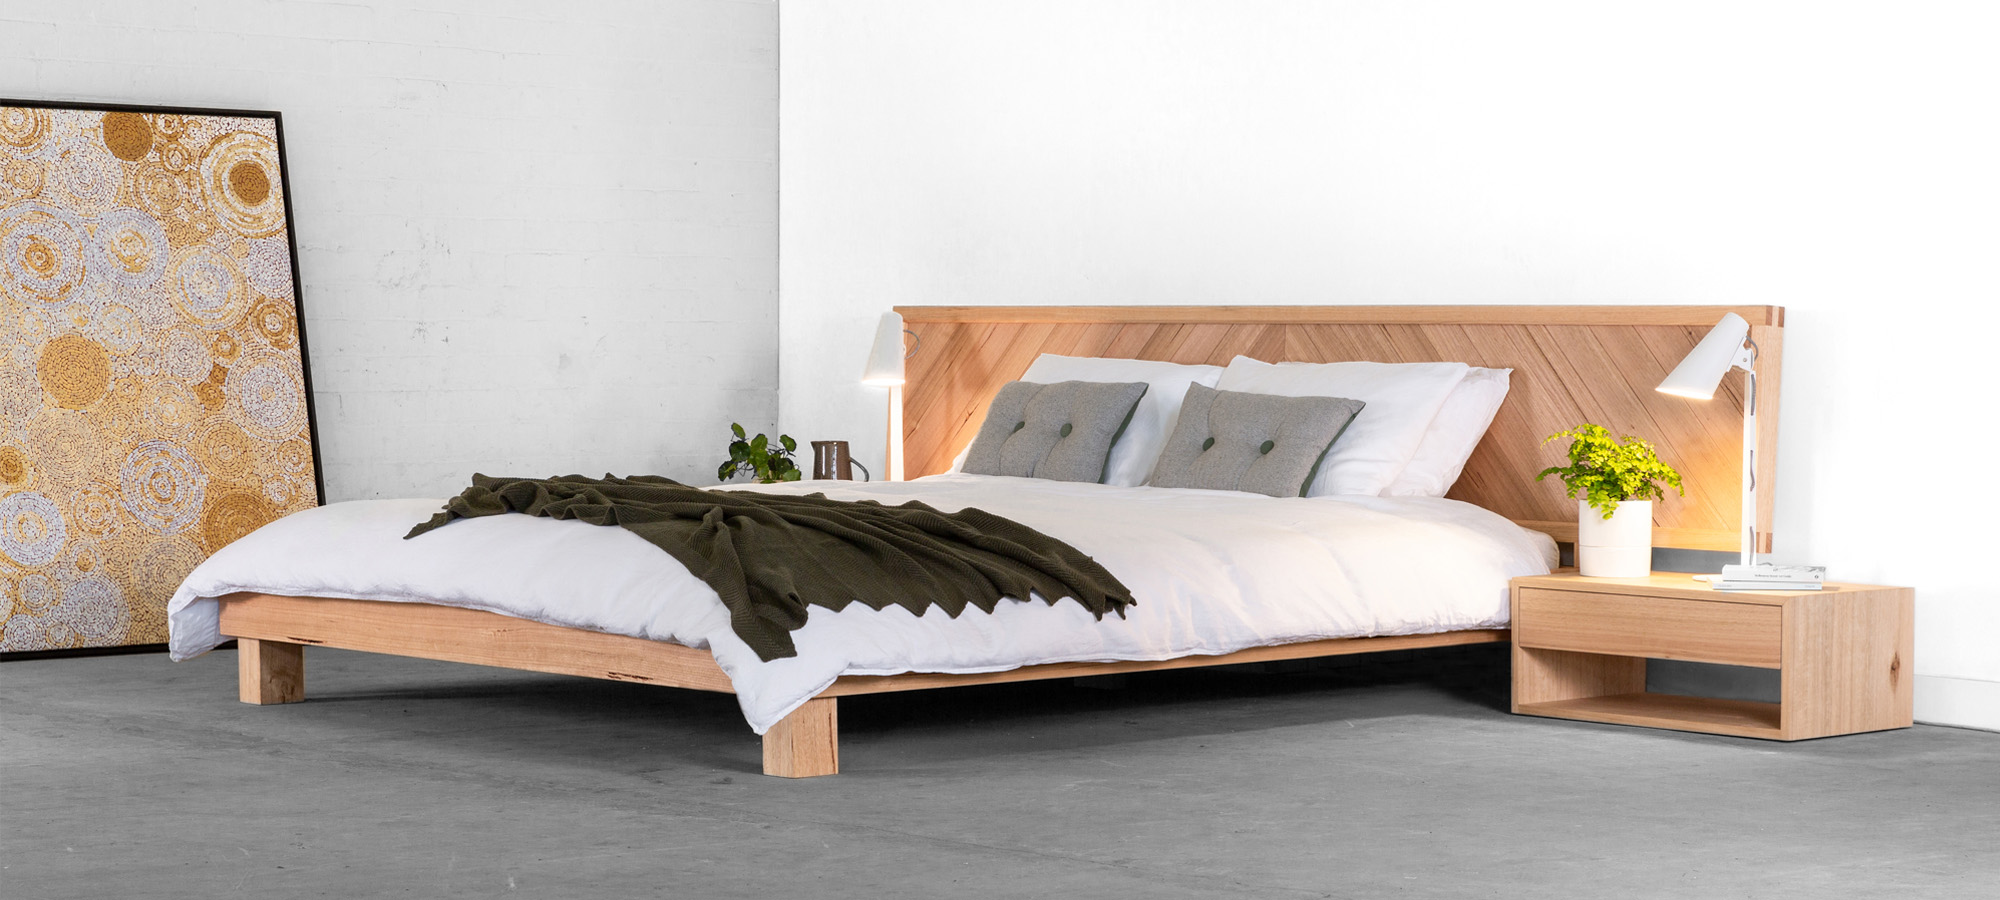 Chevron Bed 01 by Sawdust Bureau